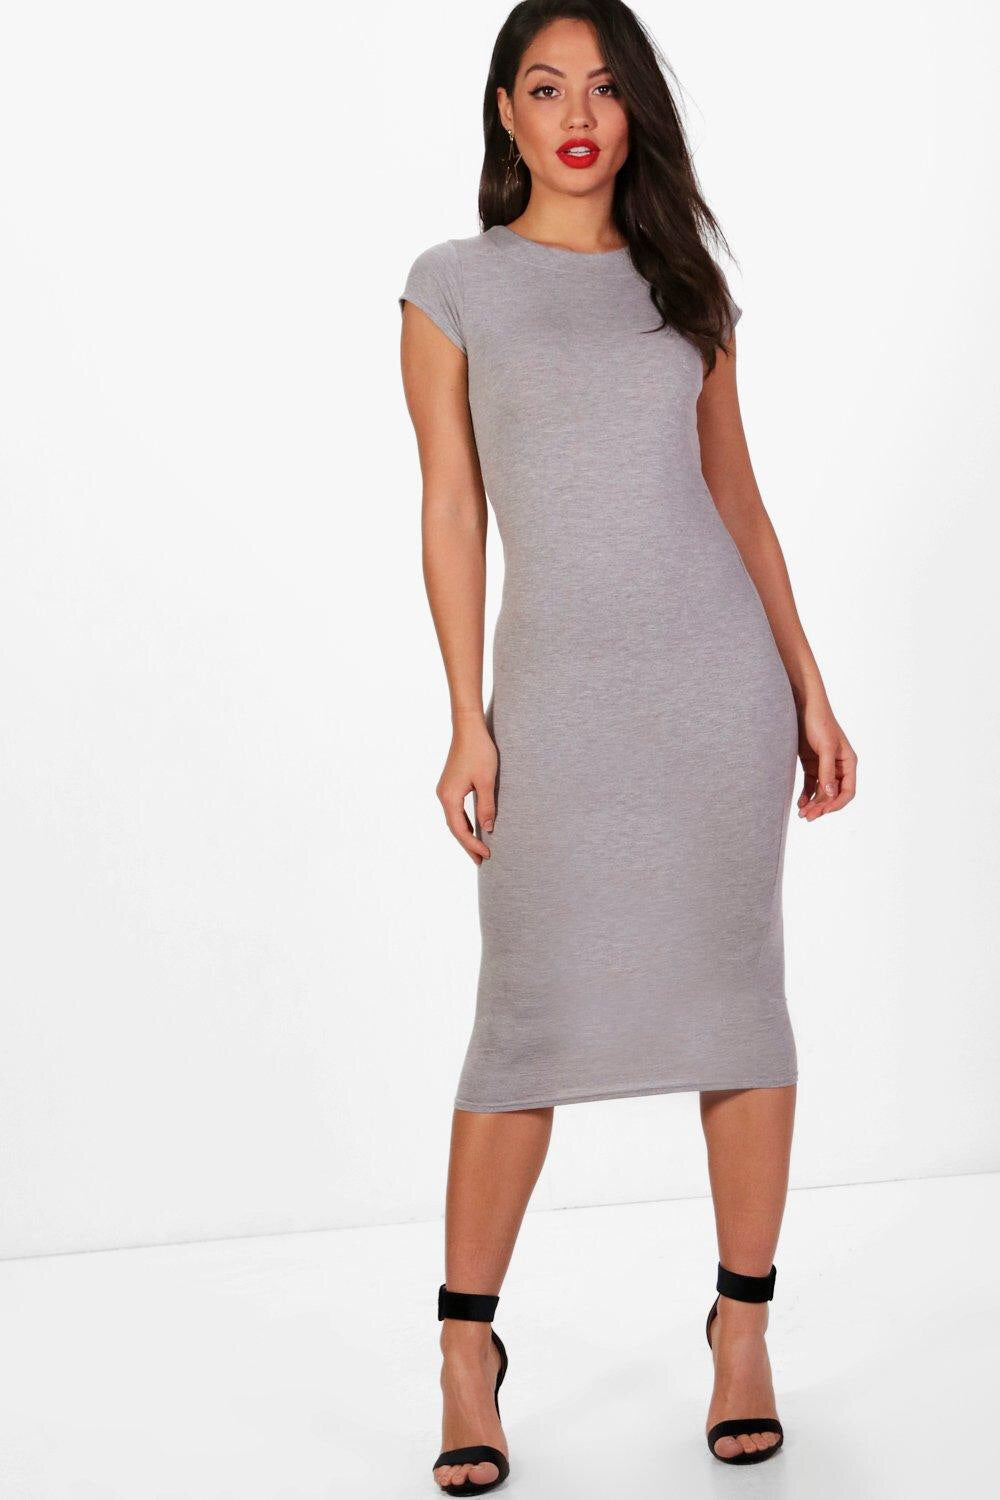 ANNA-LORRIE SOFT GREY MIDI DRESS